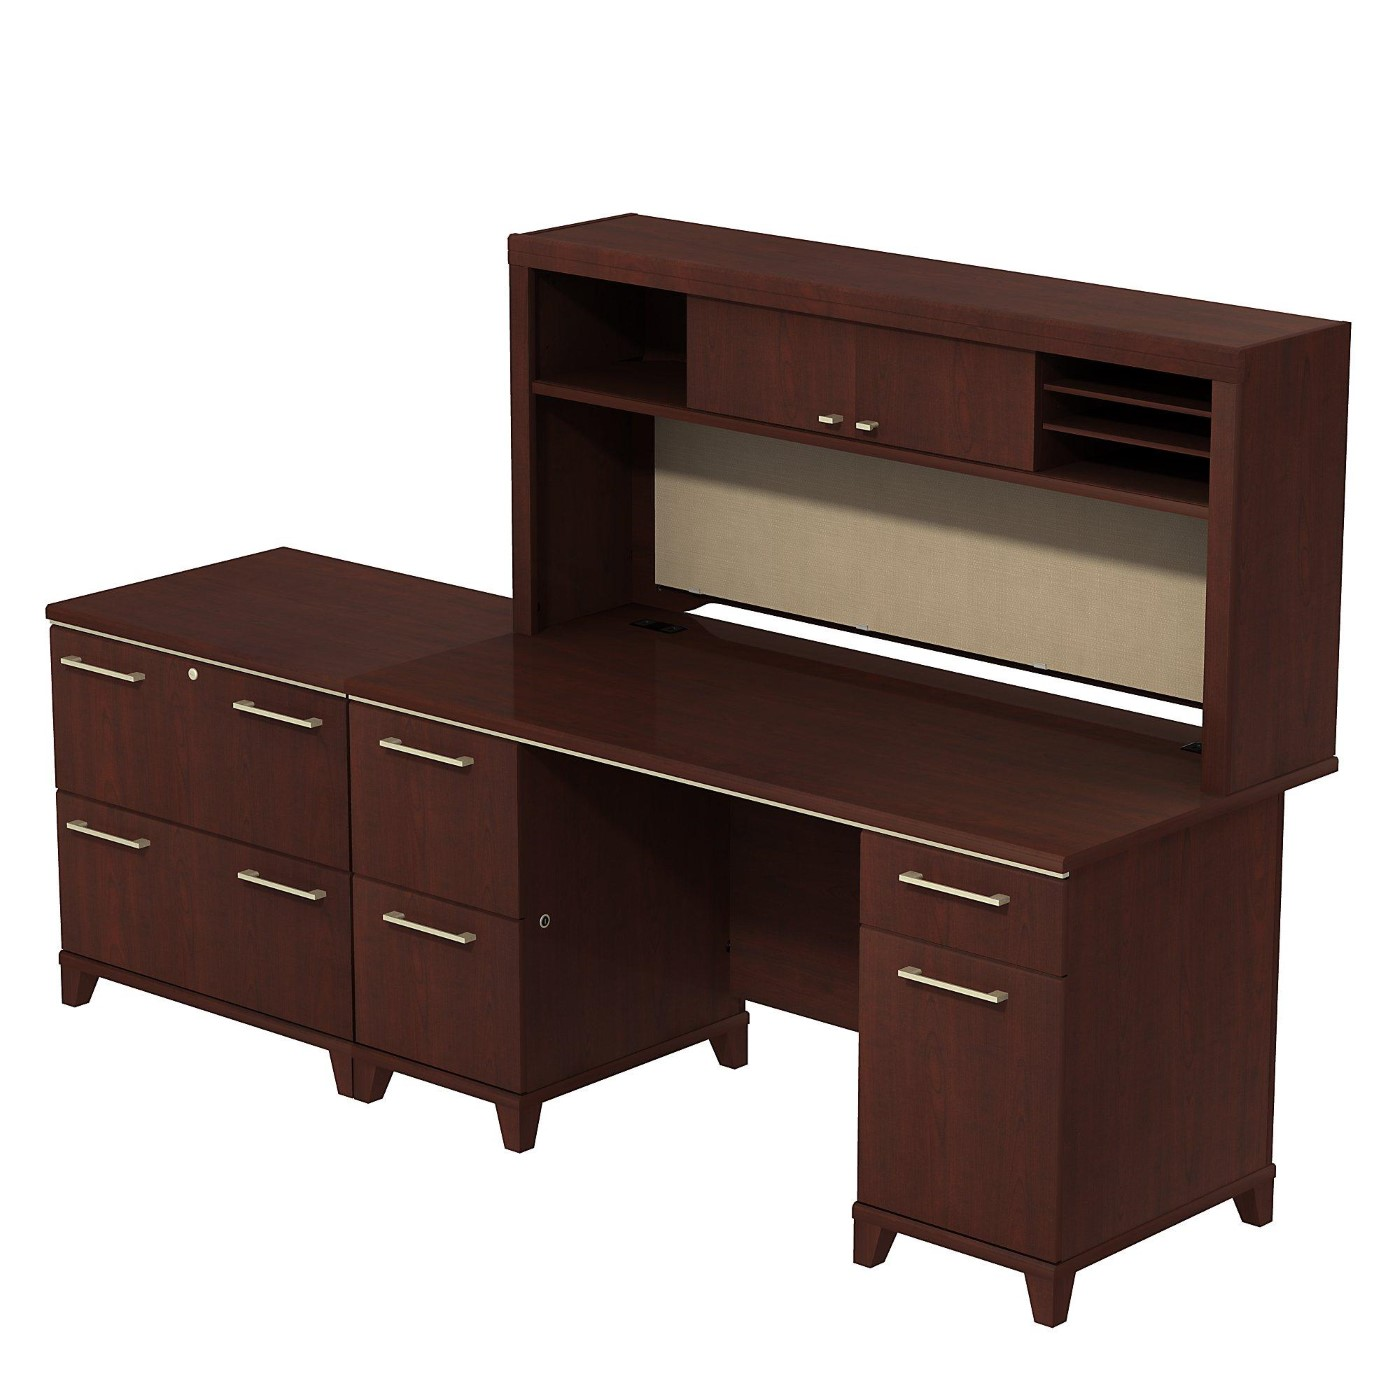 BUSH BUSINESS FURNITURE ENTERPRISE 60W OFFICE DESK WITH HUTCH AND LATERAL FILE CABINET. FREE SHIPPING  VIDEO BELOW.